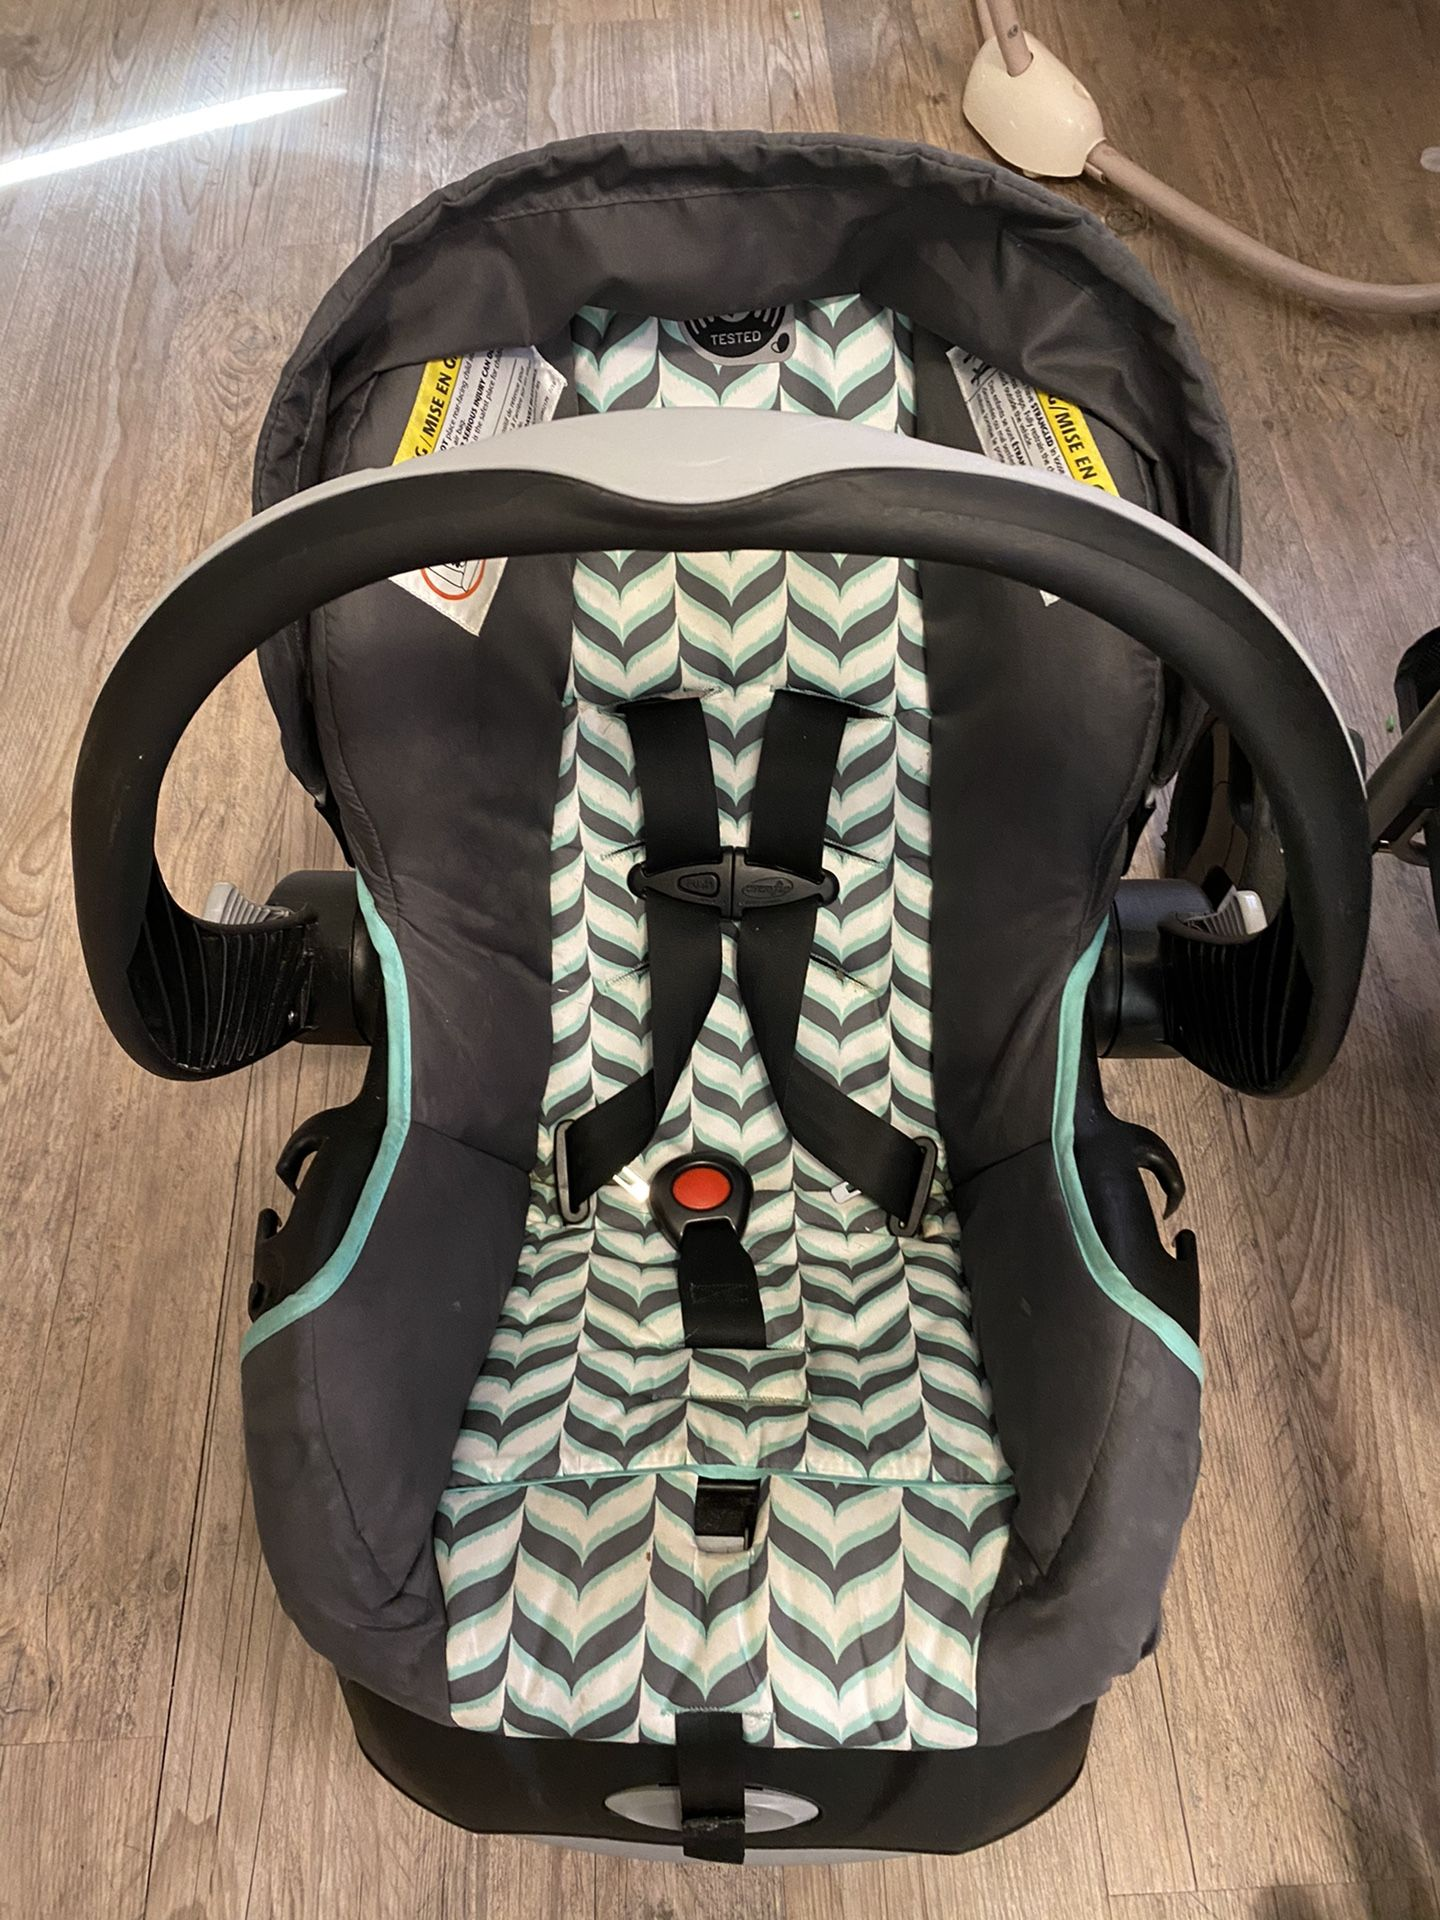 Evenflo car seat, base and stroller